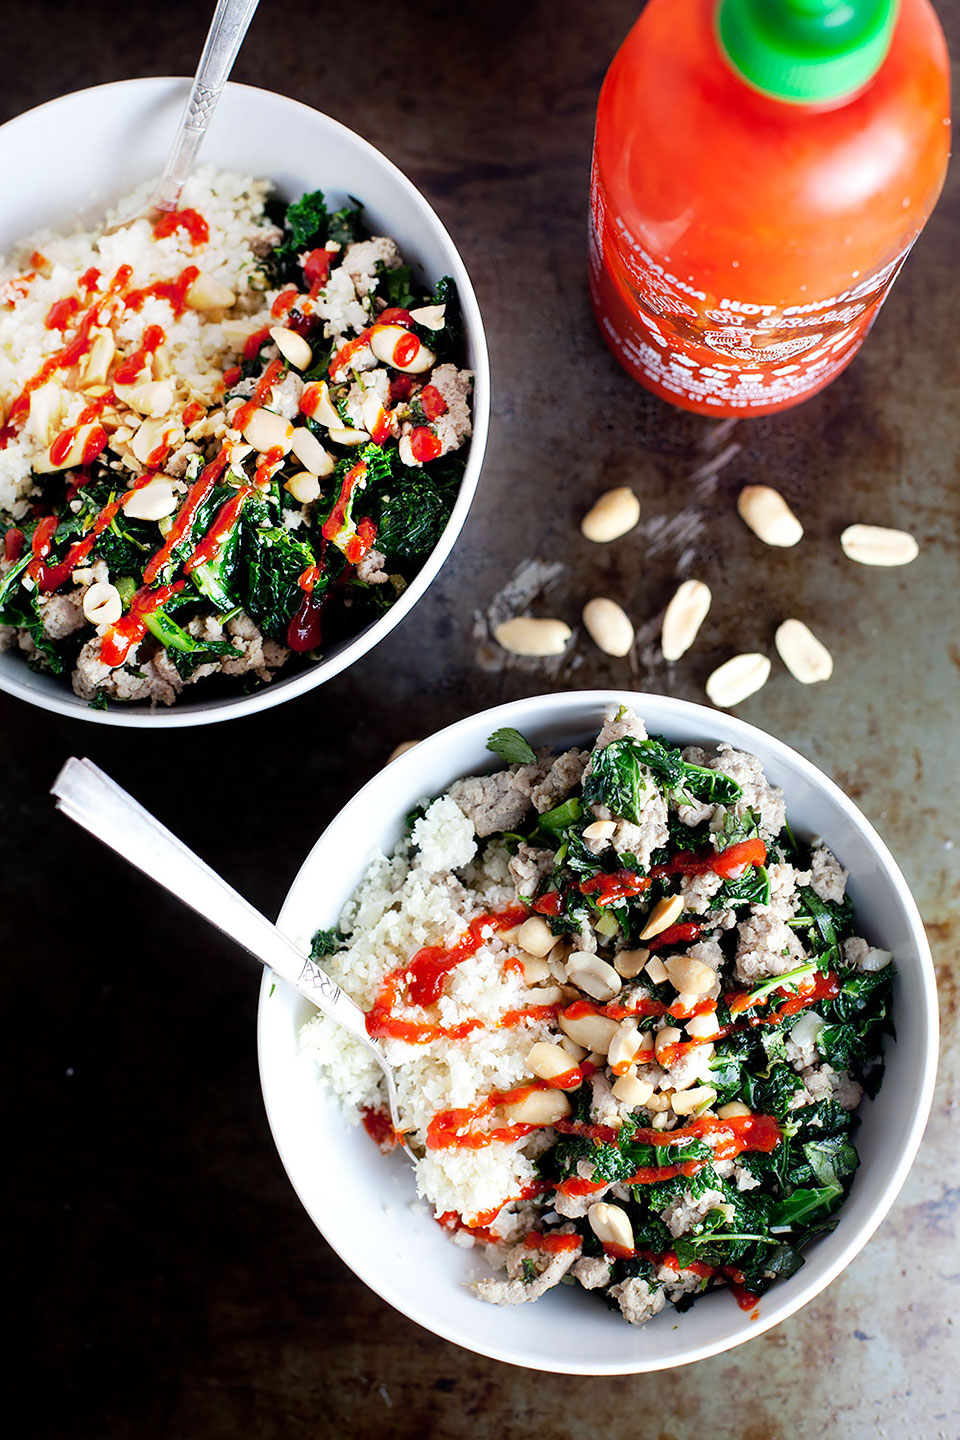 Garlic Ginger Kale Bowl | Gluten-free and paleo with a vegan option. | Loveleaf Co.